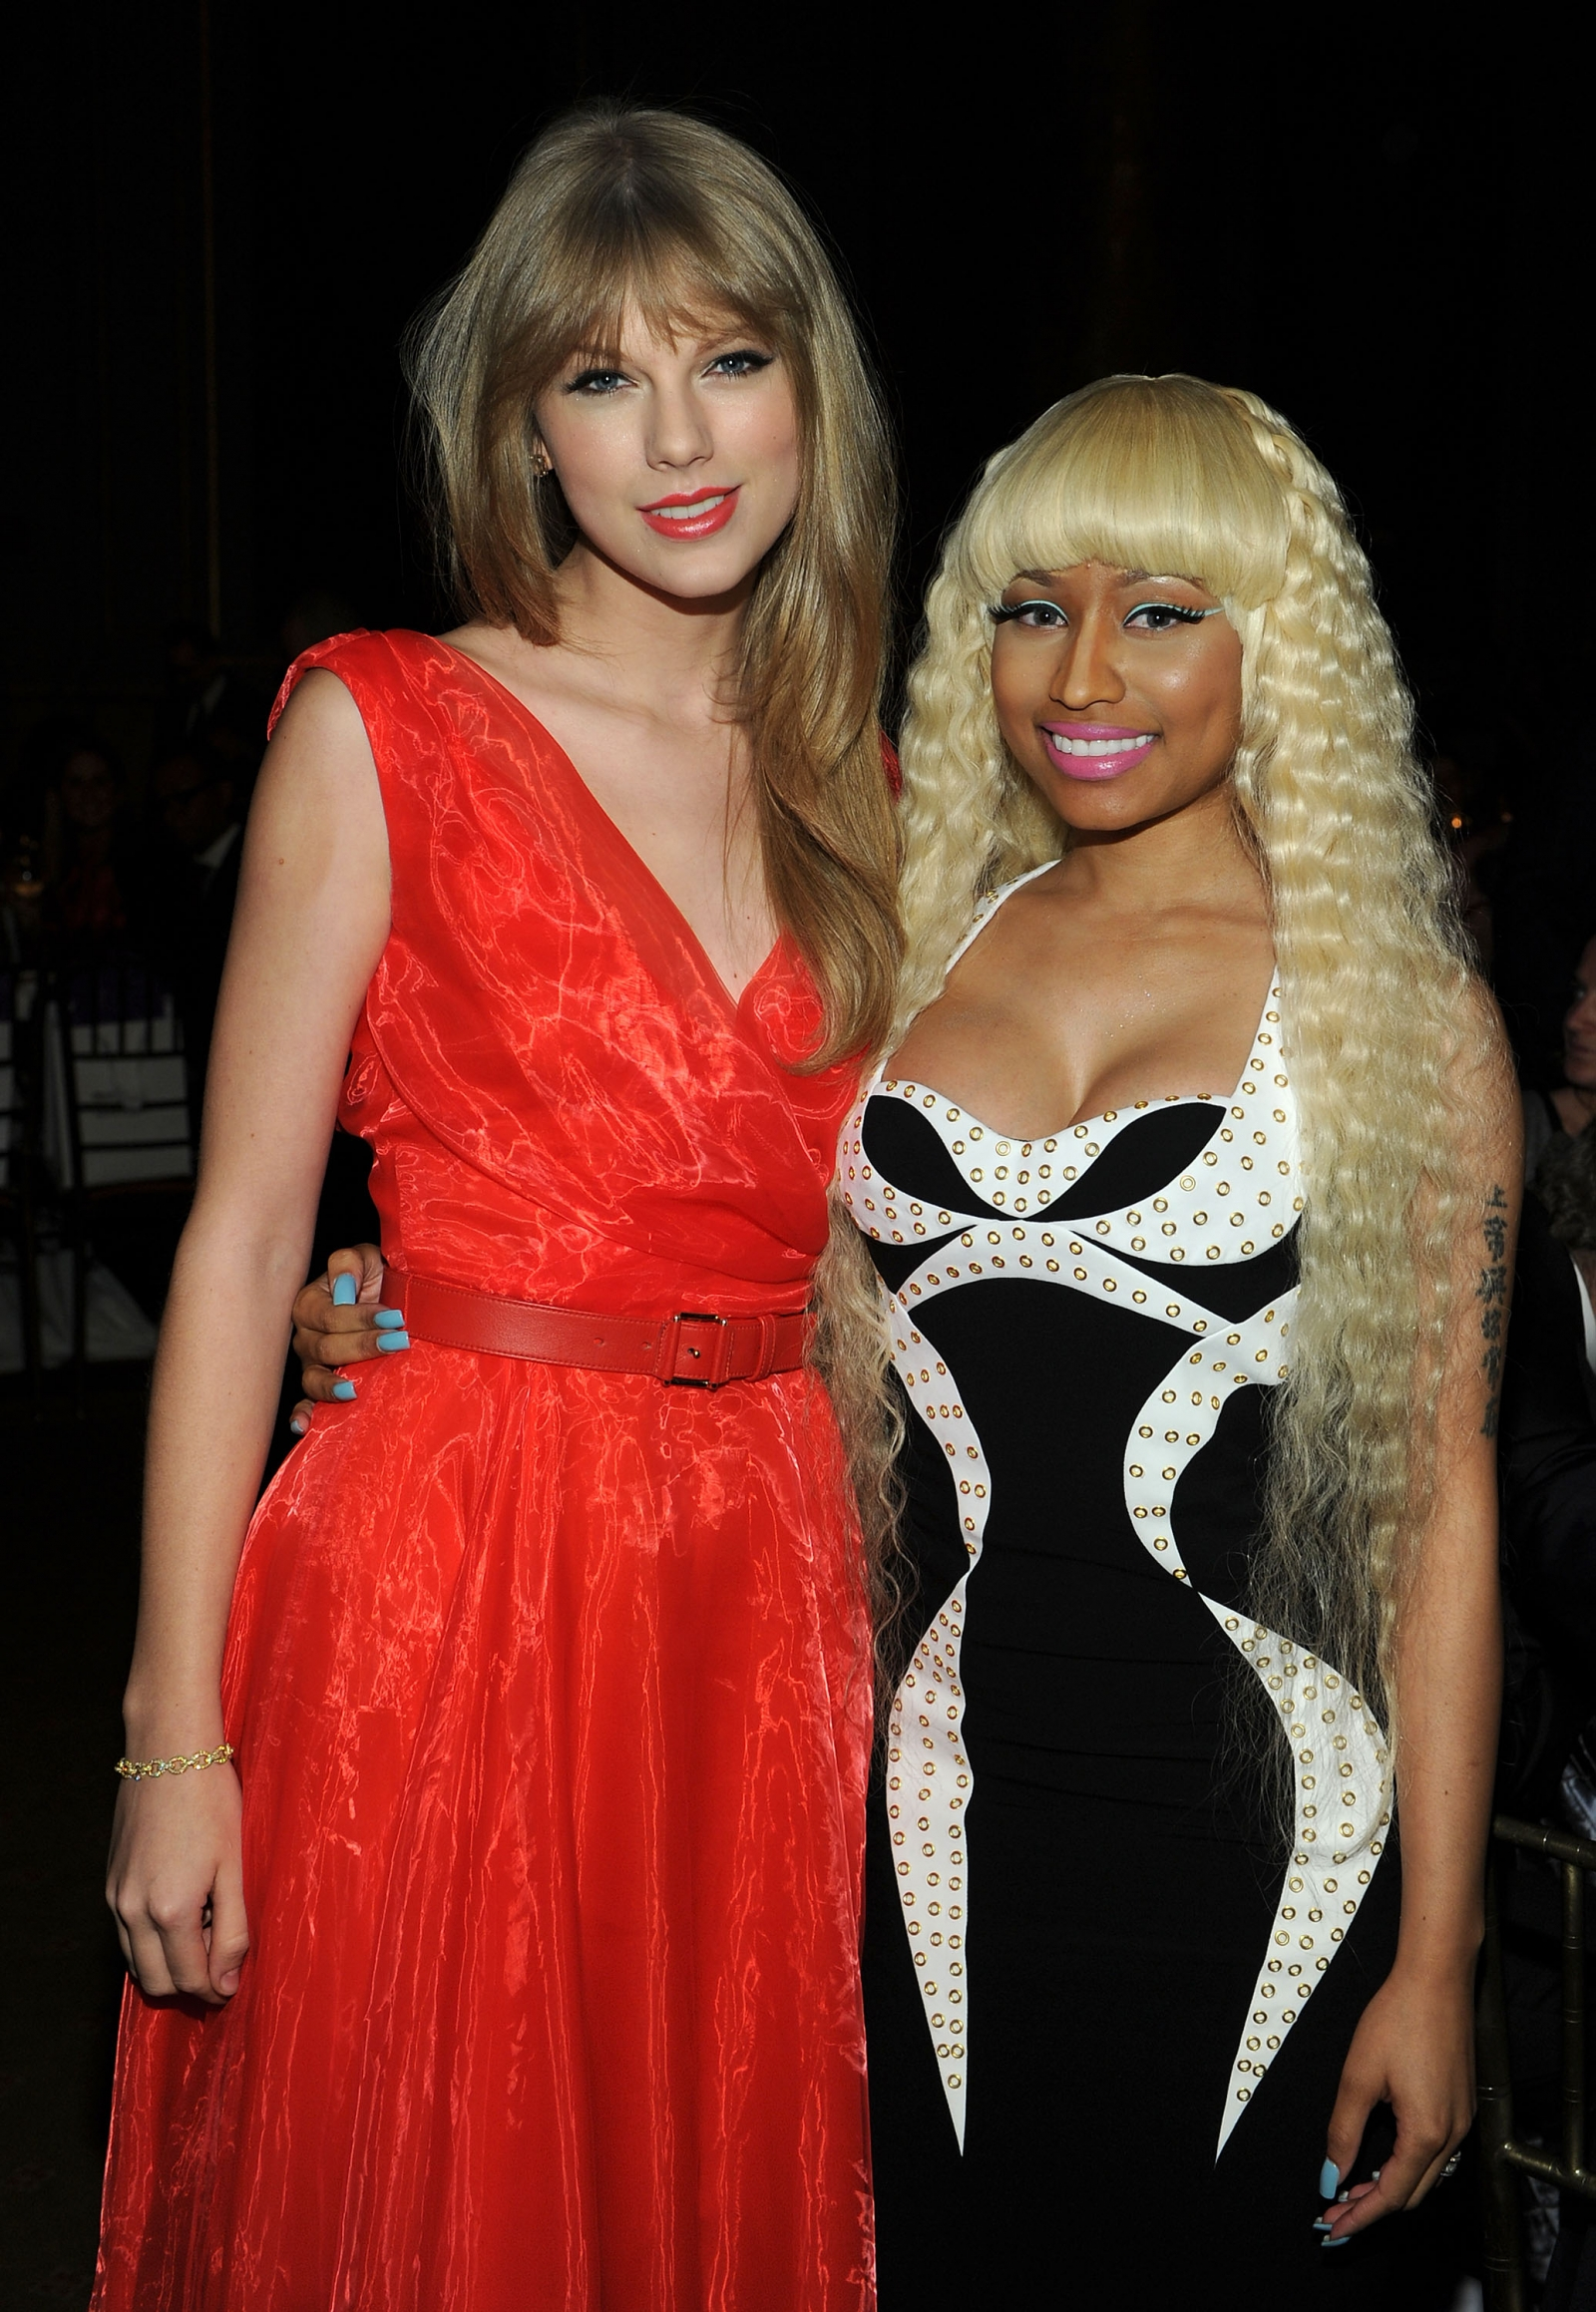 Taylor Swift and Nicki Minaj feud